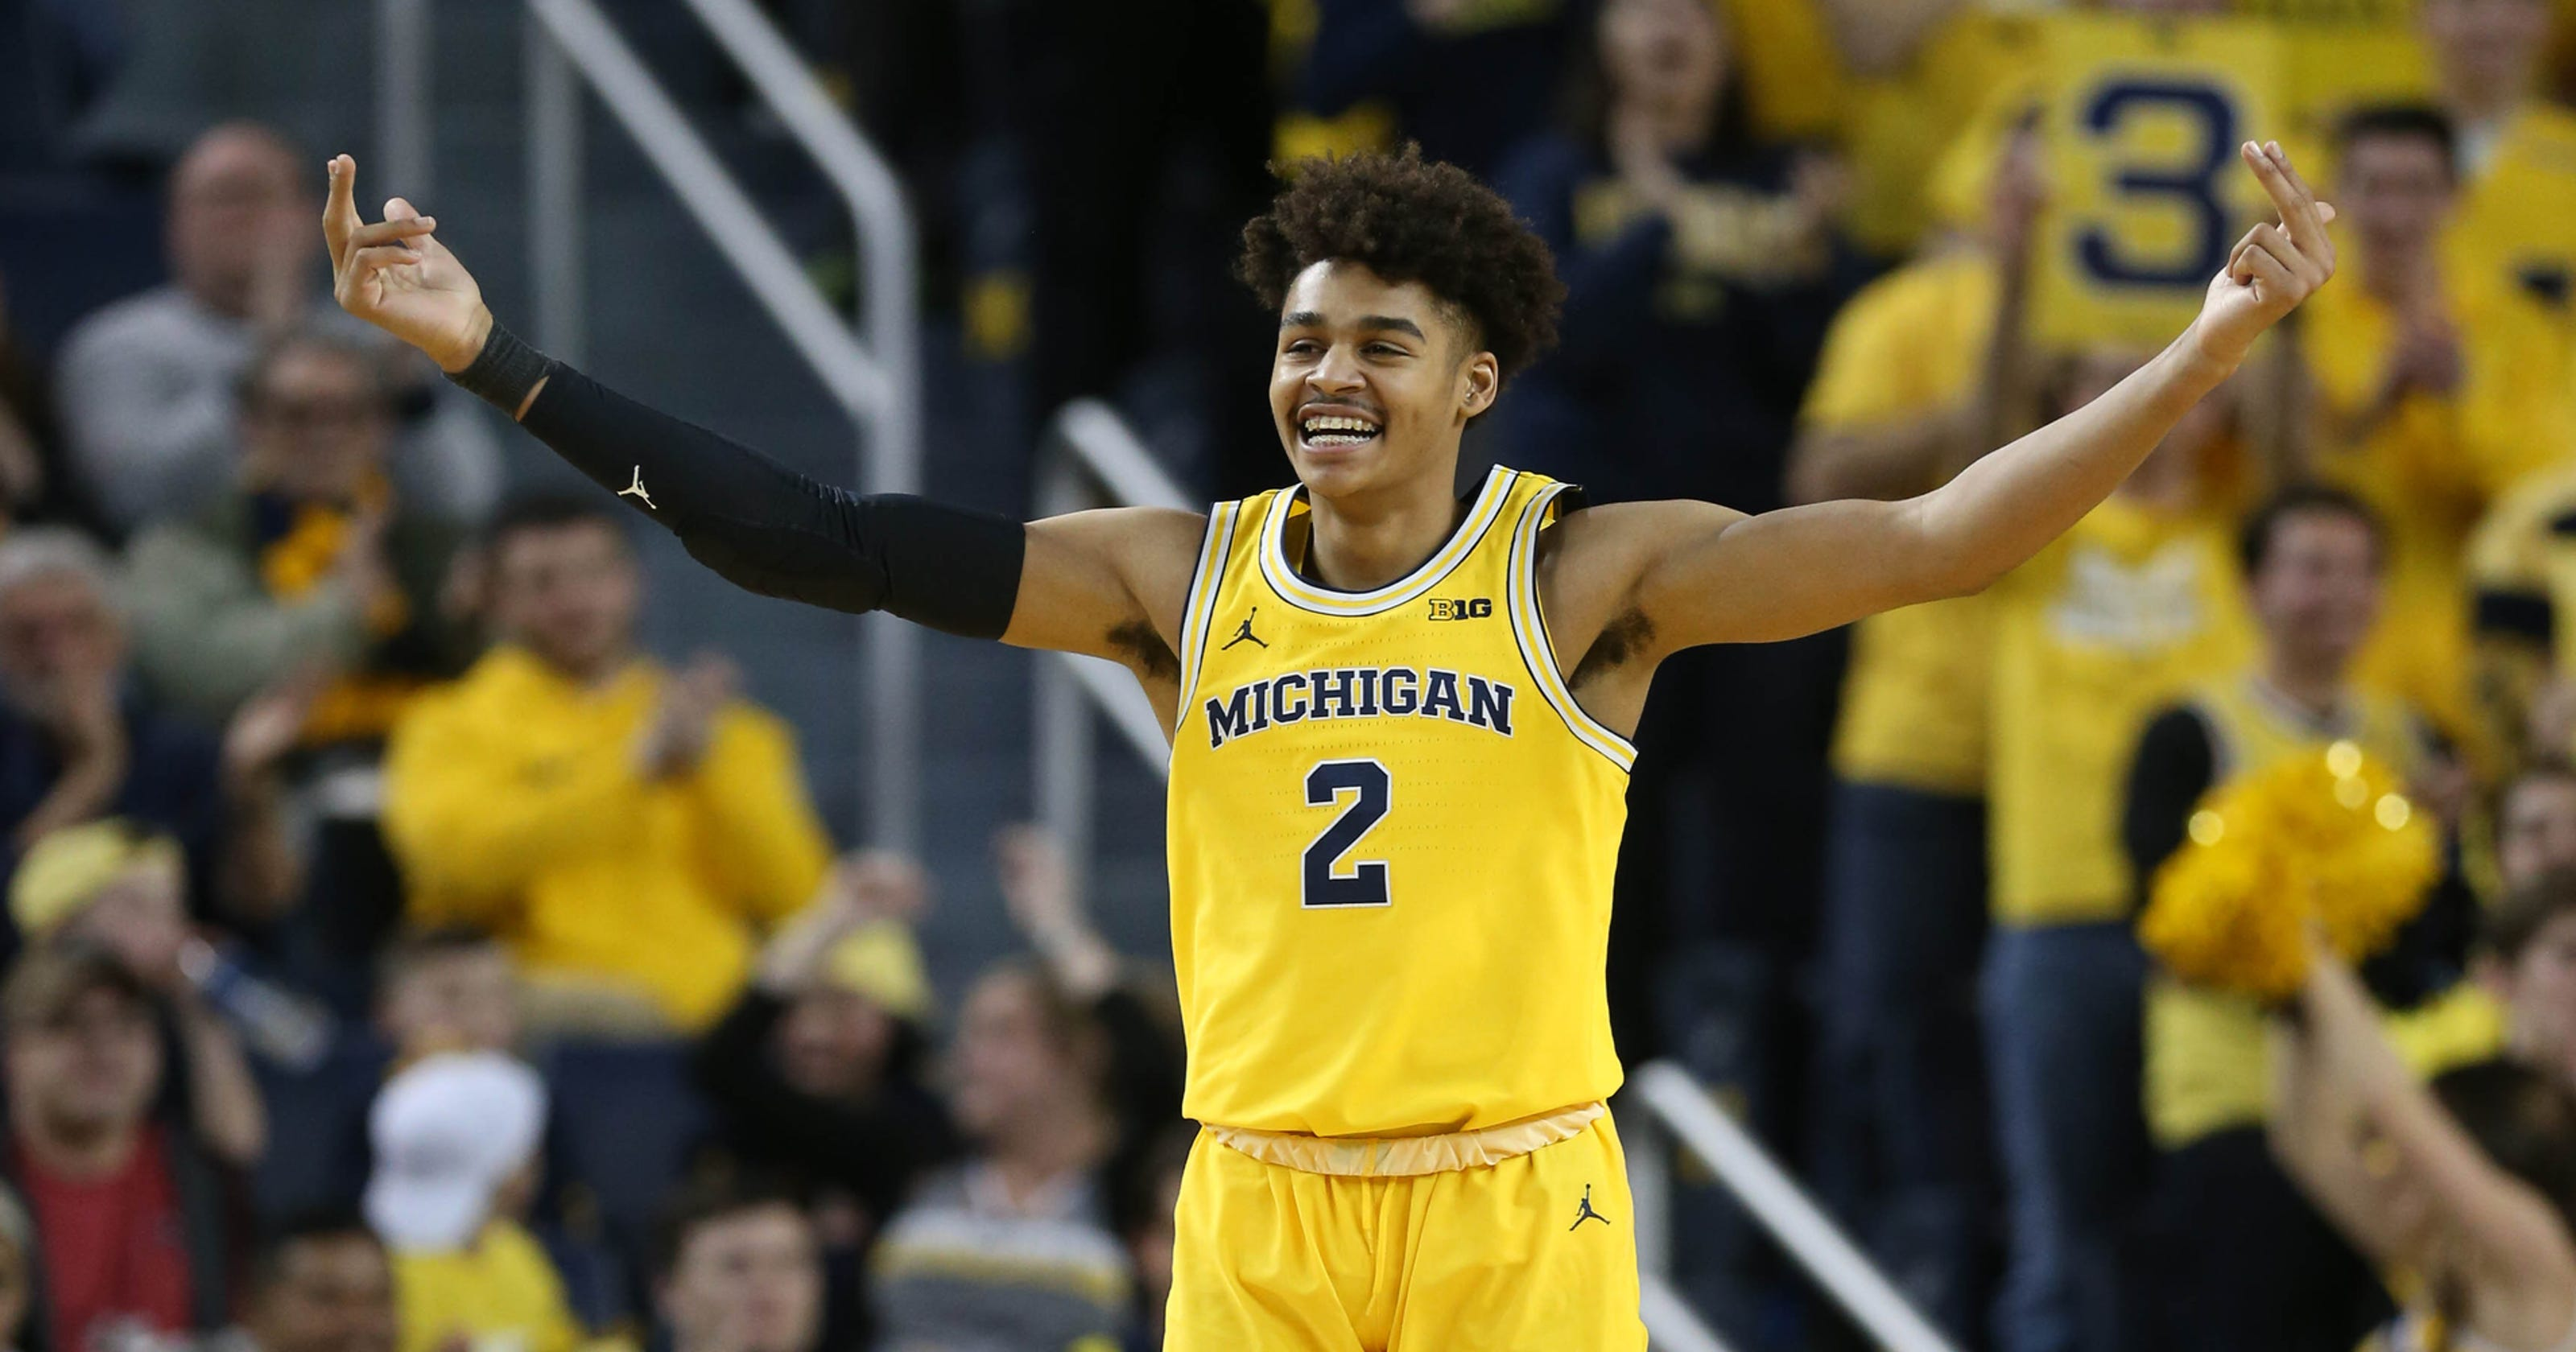 save off 07a22 c8ff3 Big Ten tournament: Michigan frosh Jordan Poole ready to ...